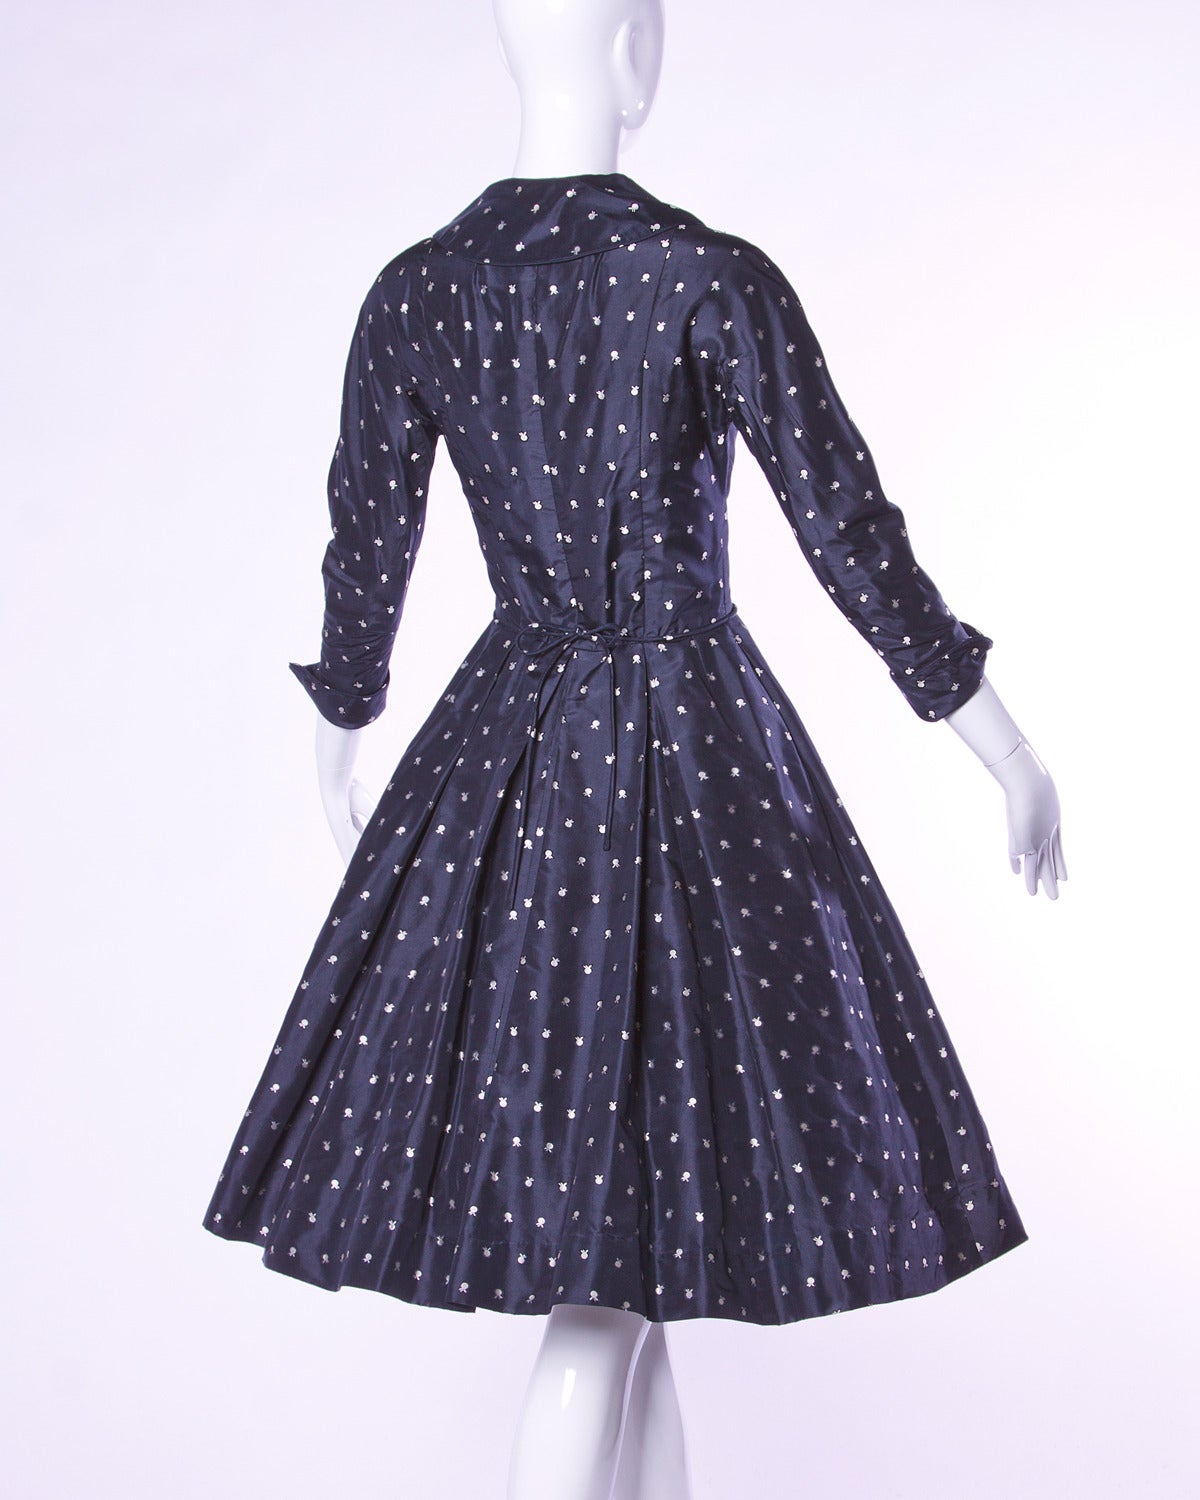 Women's Ceil Chapman Vintage 1950s 50s Fruit Print Navy Silk Dress with Box Pleats For Sale